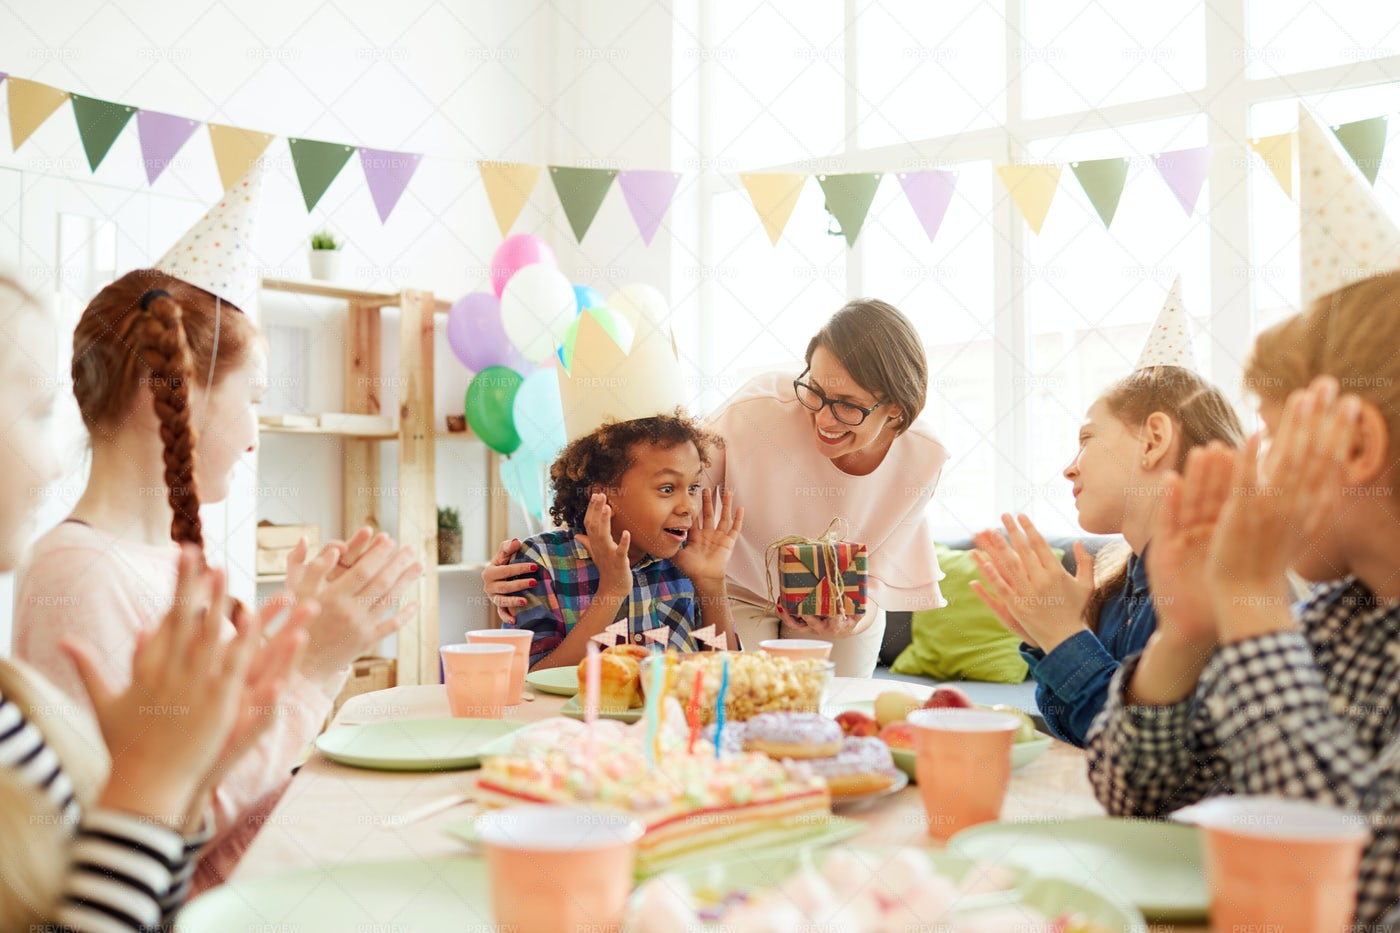 Excited Boy At Birthday Party: Stock Photos